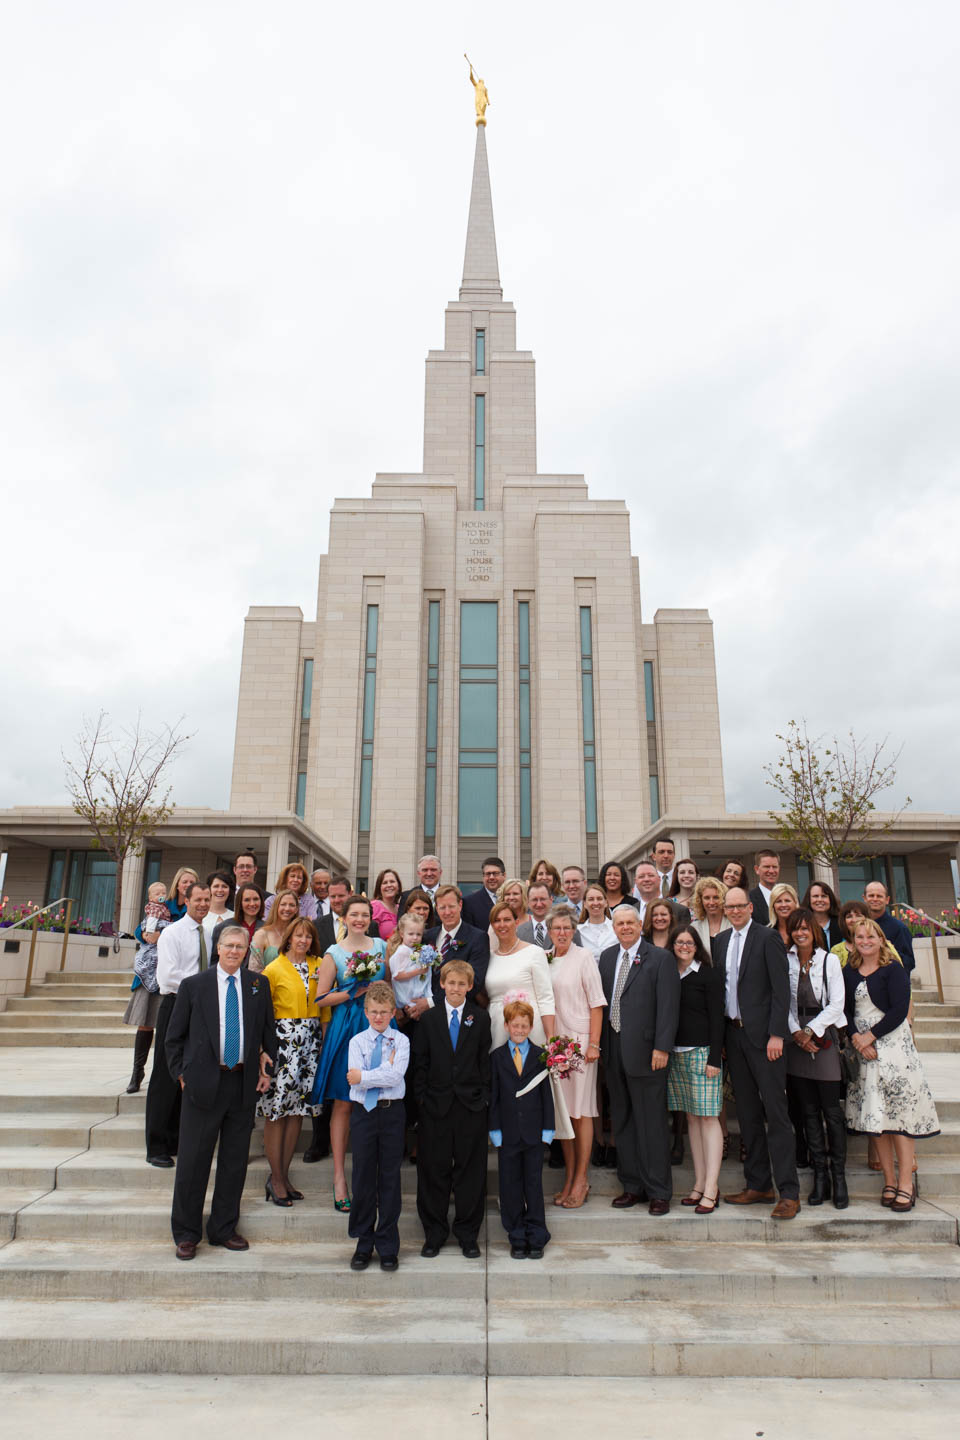 The whole group of family and friends in front of the Oquirrh Mountain Temple